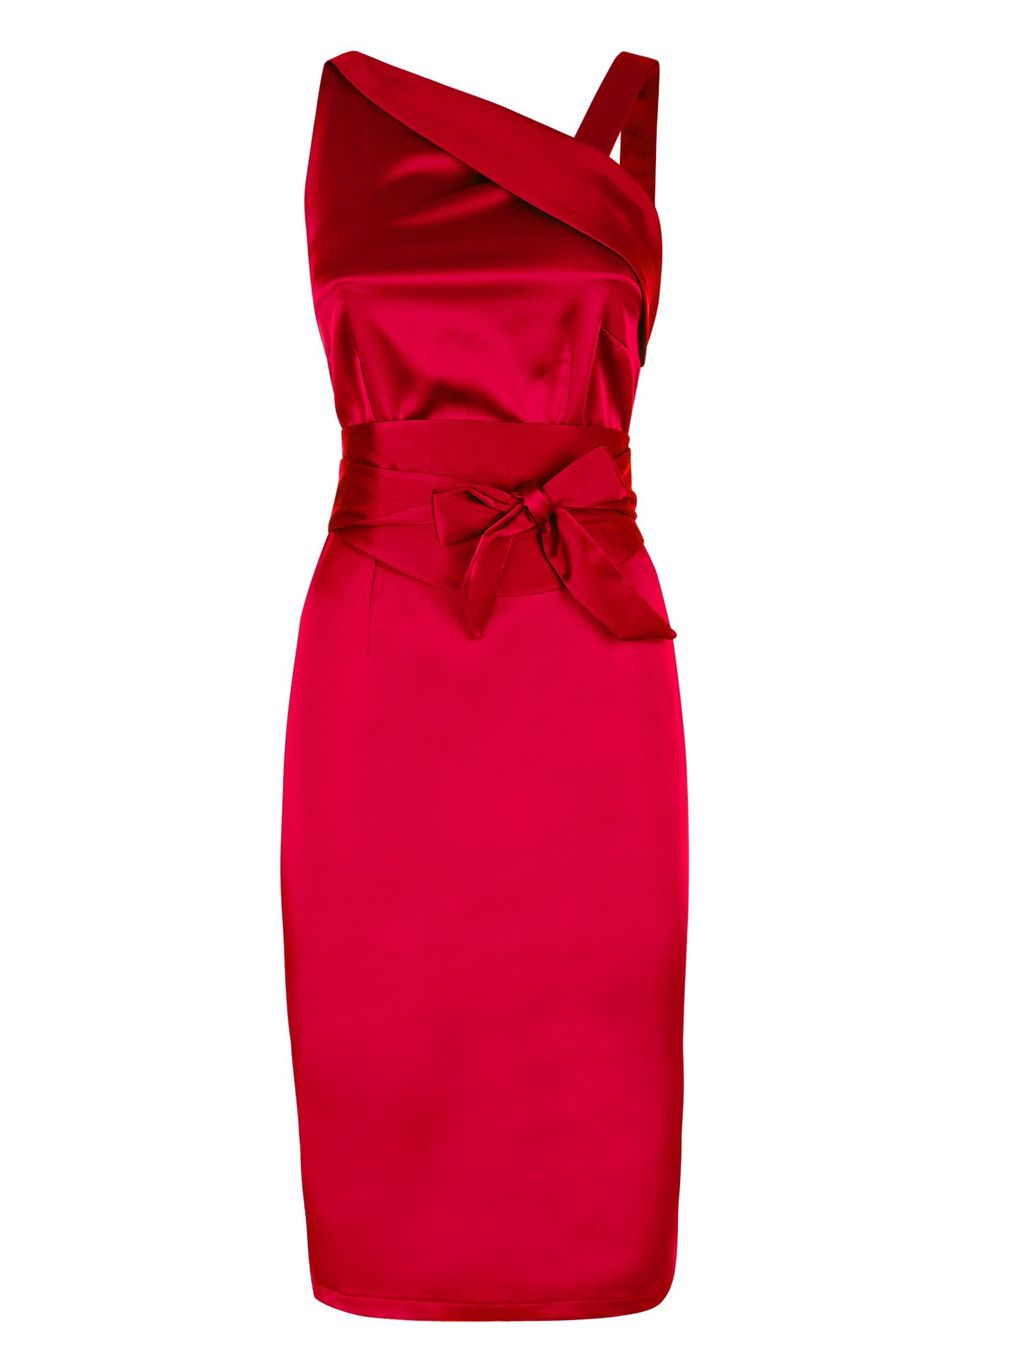 Kneelength Silk Dress, Red - style: shift; fit: tailored/fitted; pattern: plain; sleeve style: sleeveless; neckline: asymmetric; waist detail: belted waist/tie at waist/drawstring; length: on the knee; occasions: occasion; shoulder detail: asymmetric shoulder; sleeve length: sleeveless; texture group: structured shiny - satin/tafetta/silk etc.; pattern type: fabric; predominant colour: raspberry; season: s/s 2015; wardrobe: event